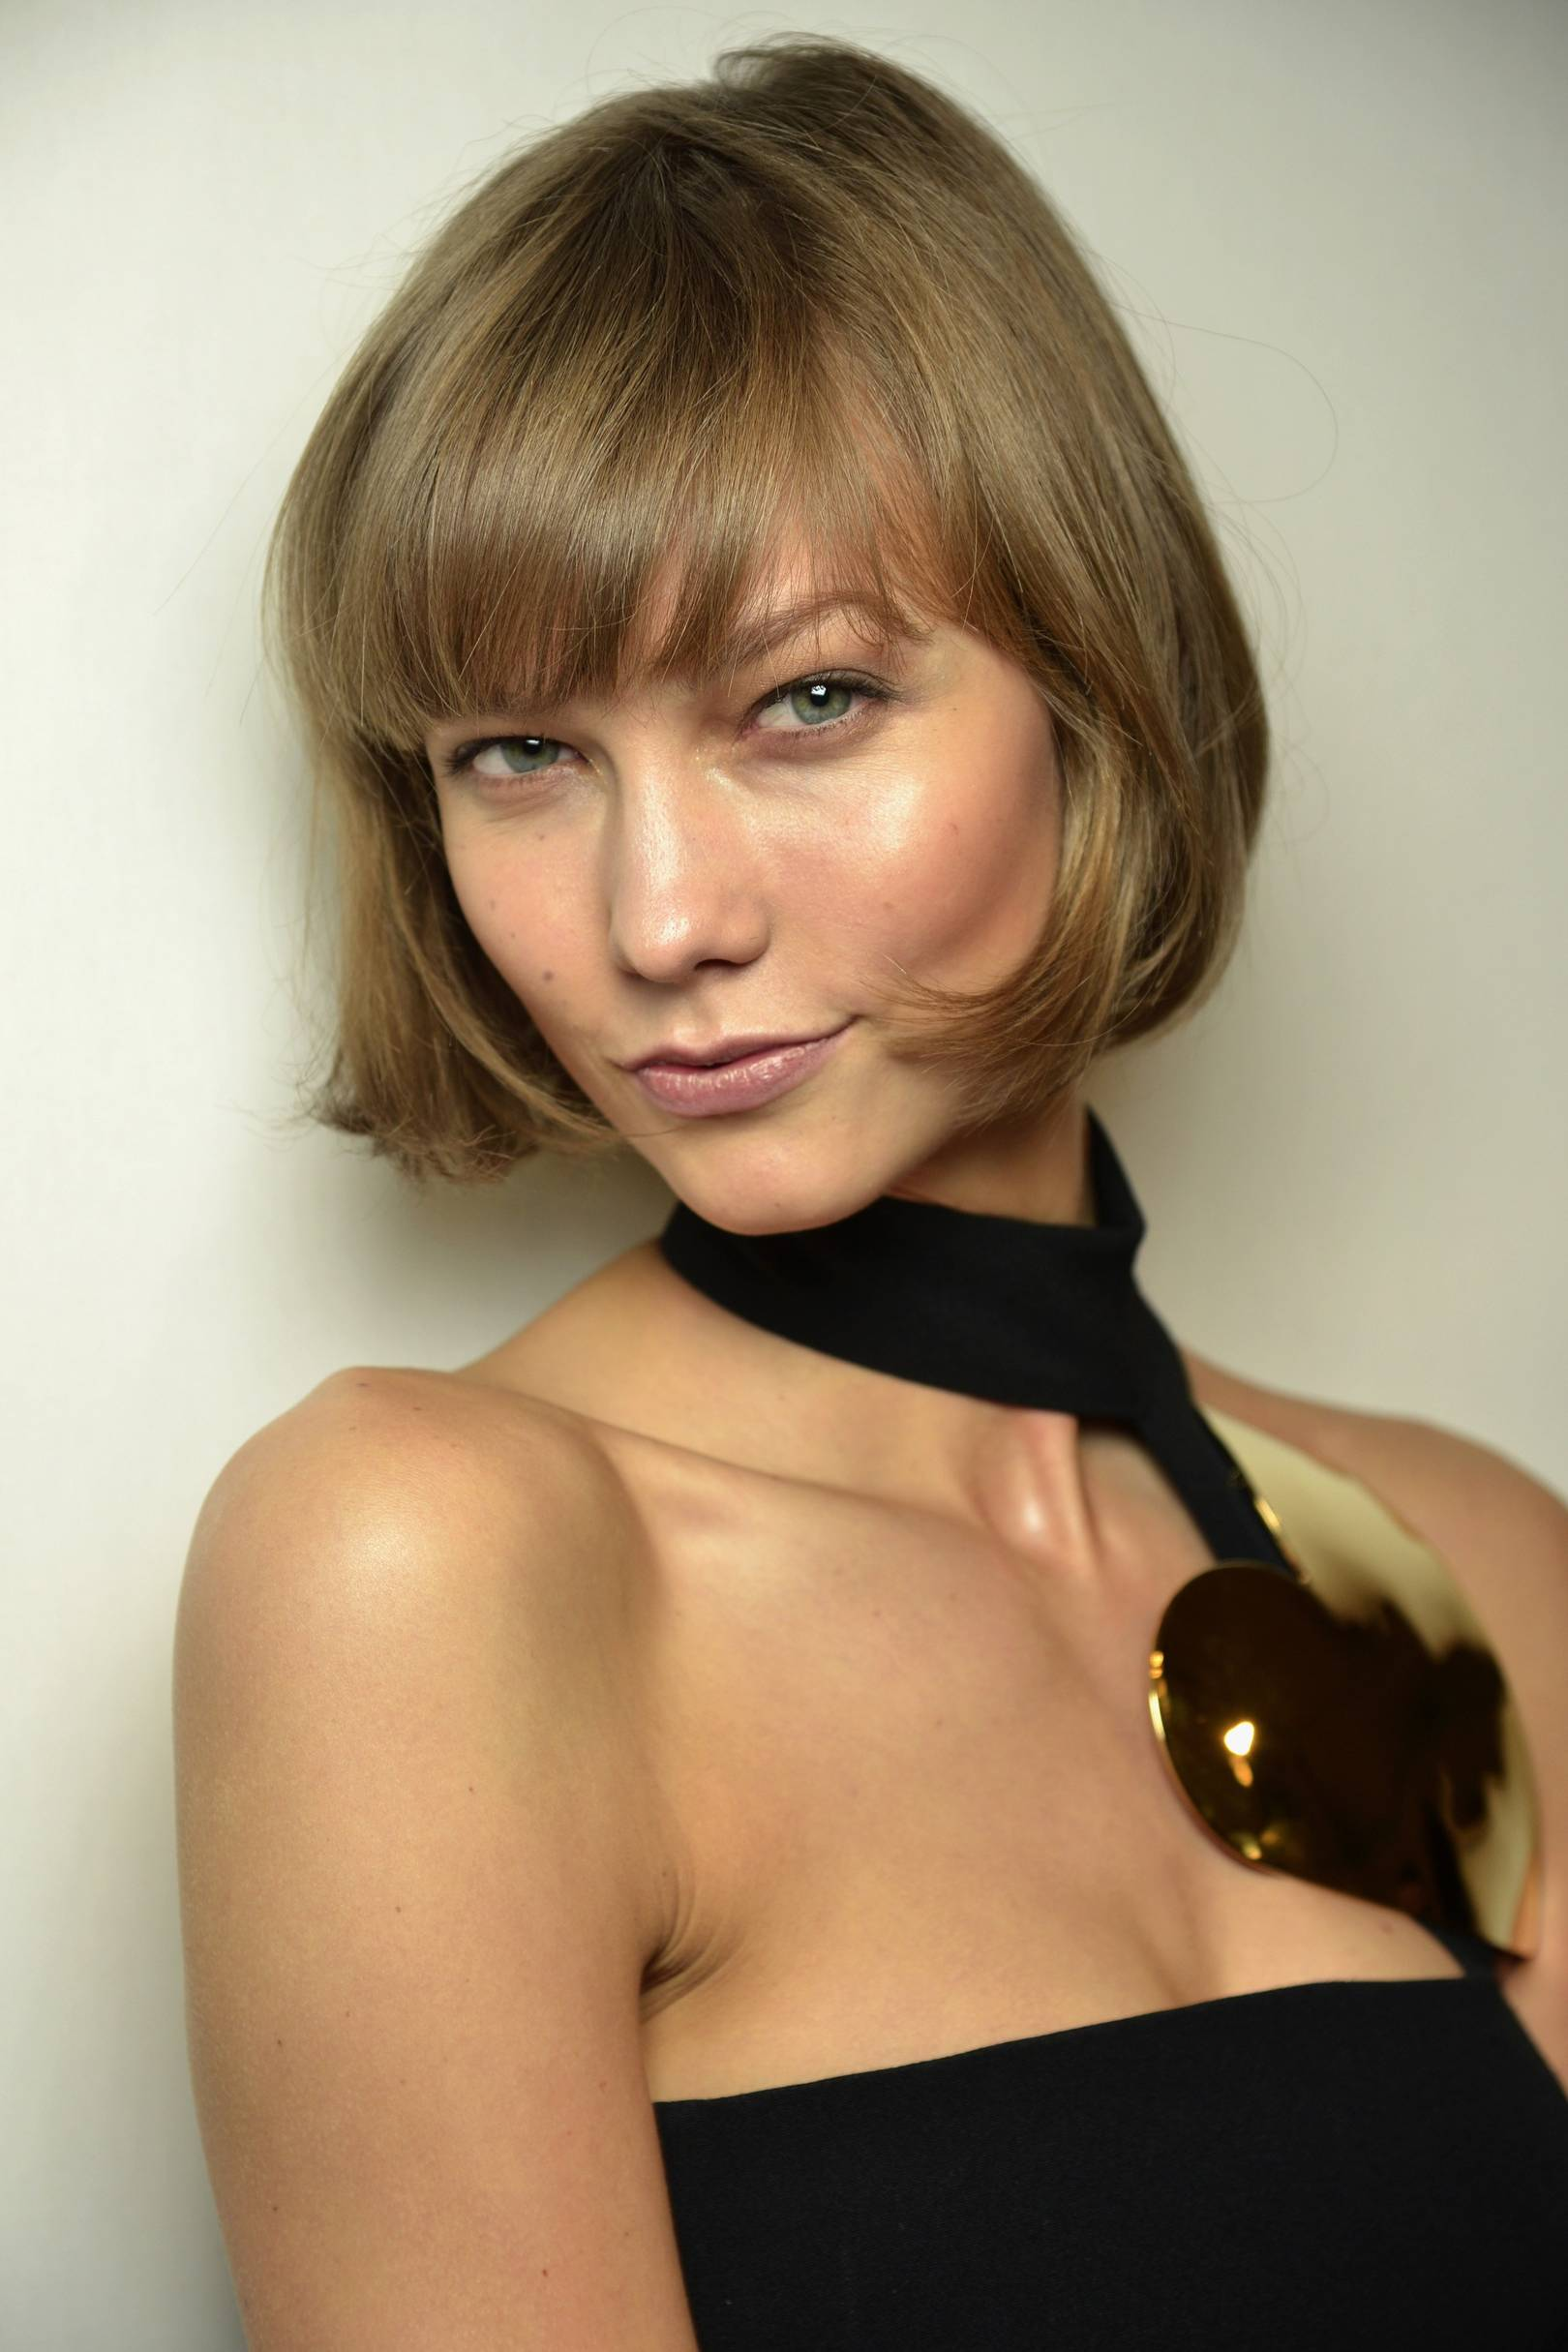 Model Karlie Kloss Cried Over Bob Haircuthairstyle British Vogue